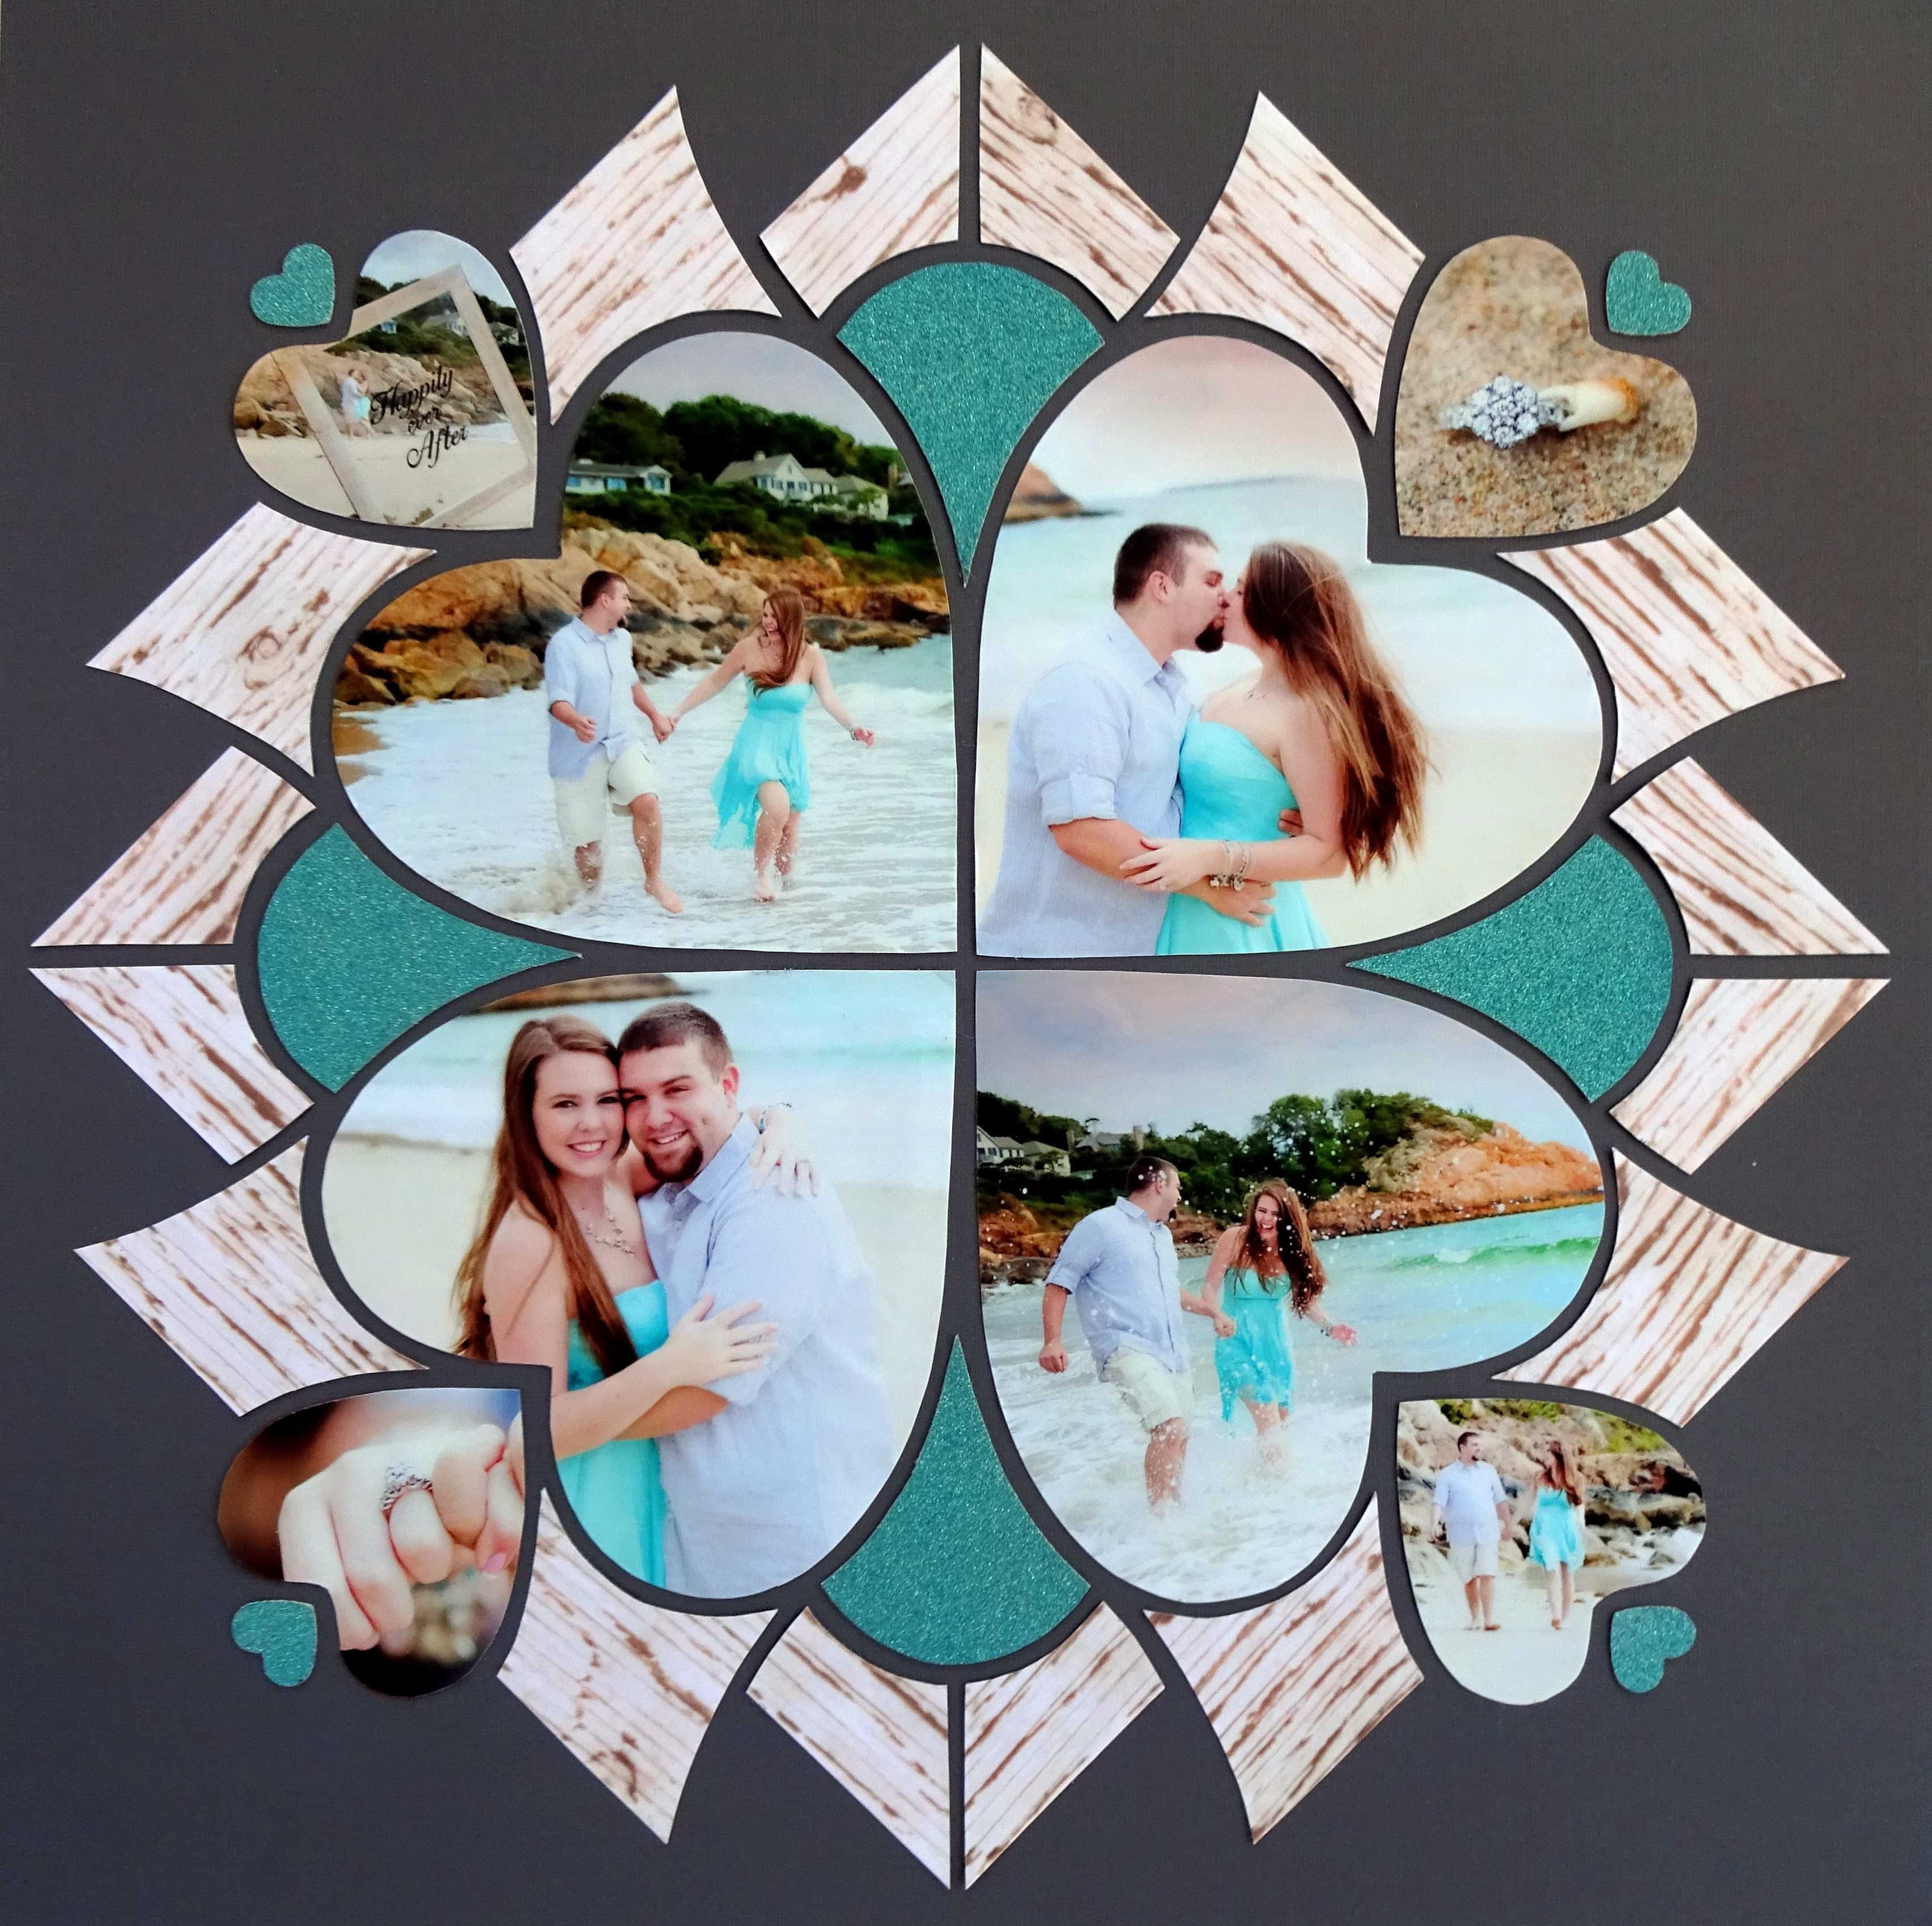 33 creative scrapbook ideas every crafter should know diy projects - Layout Created By Sandy Cucinotti Using Lea France Romance Stencil Photo Credit A Brilliant Wedding Scrapbook Pagesbirthday